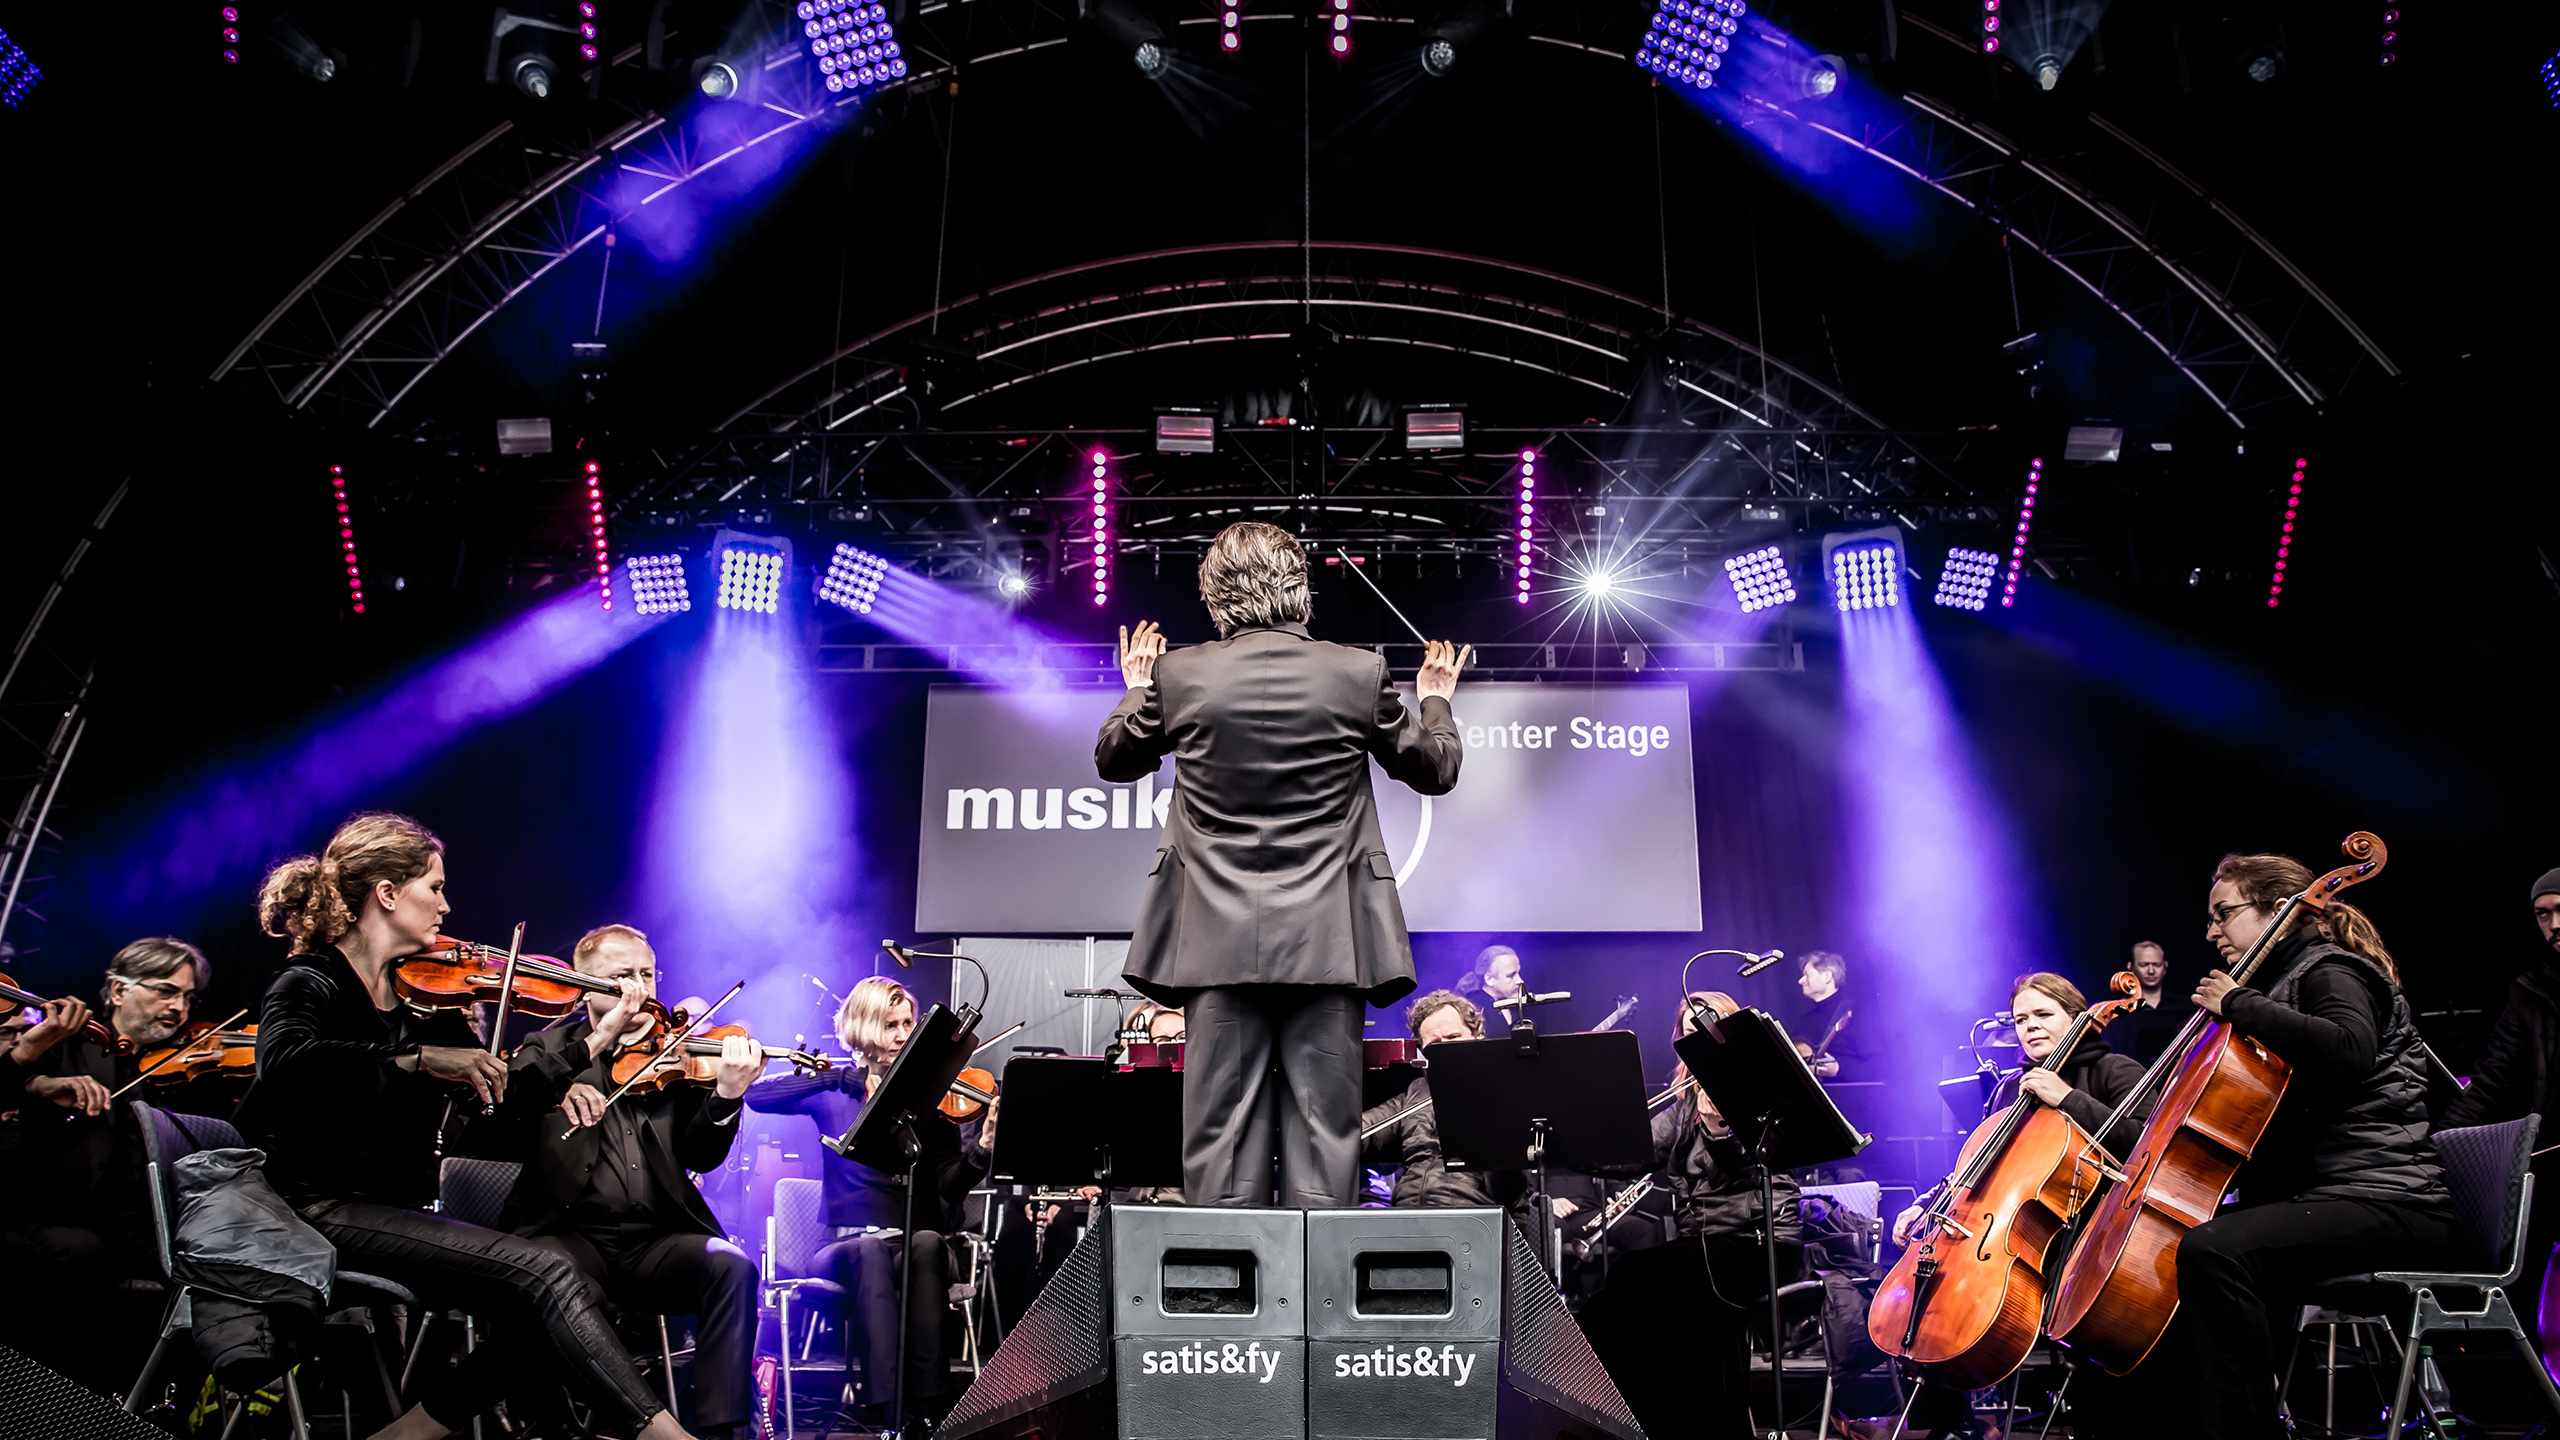 Neue Philharmonie Frankfurt (orchestra) at the Center Stage at Musikmesse